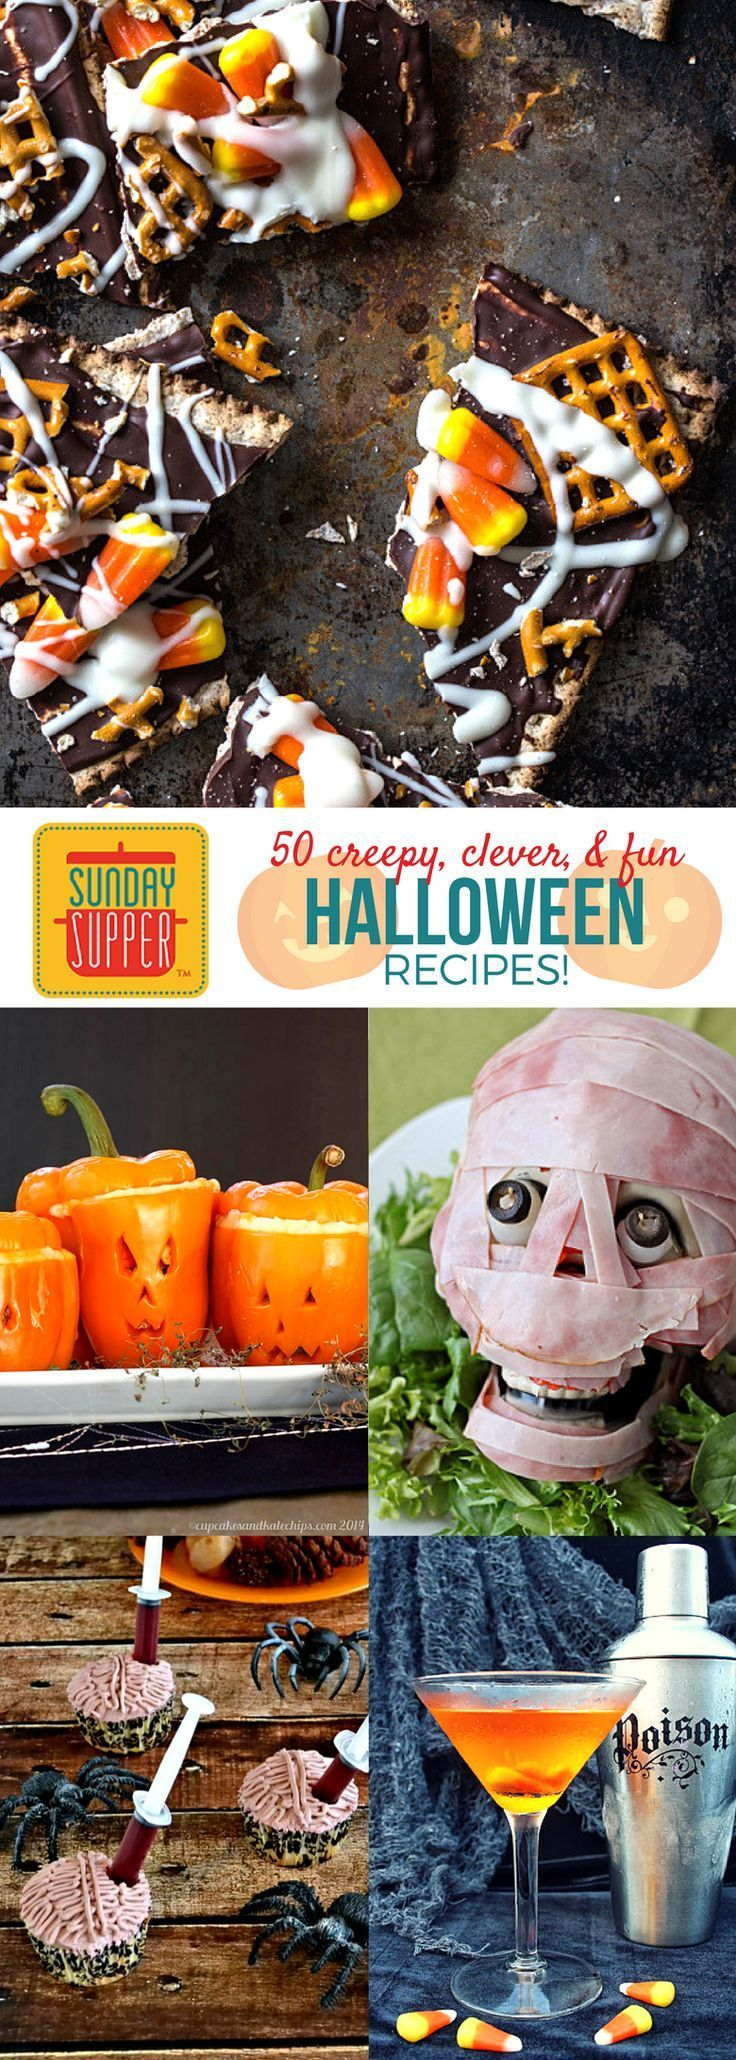 Here is a collection of FIFTY Halloween inspired dishes from the Sunday Supper crew that are sure to be an absolute hit at your ghoulish get-togethers. The entire family is going to love assembling these fiendish food items in the kitchen! Now for the fun